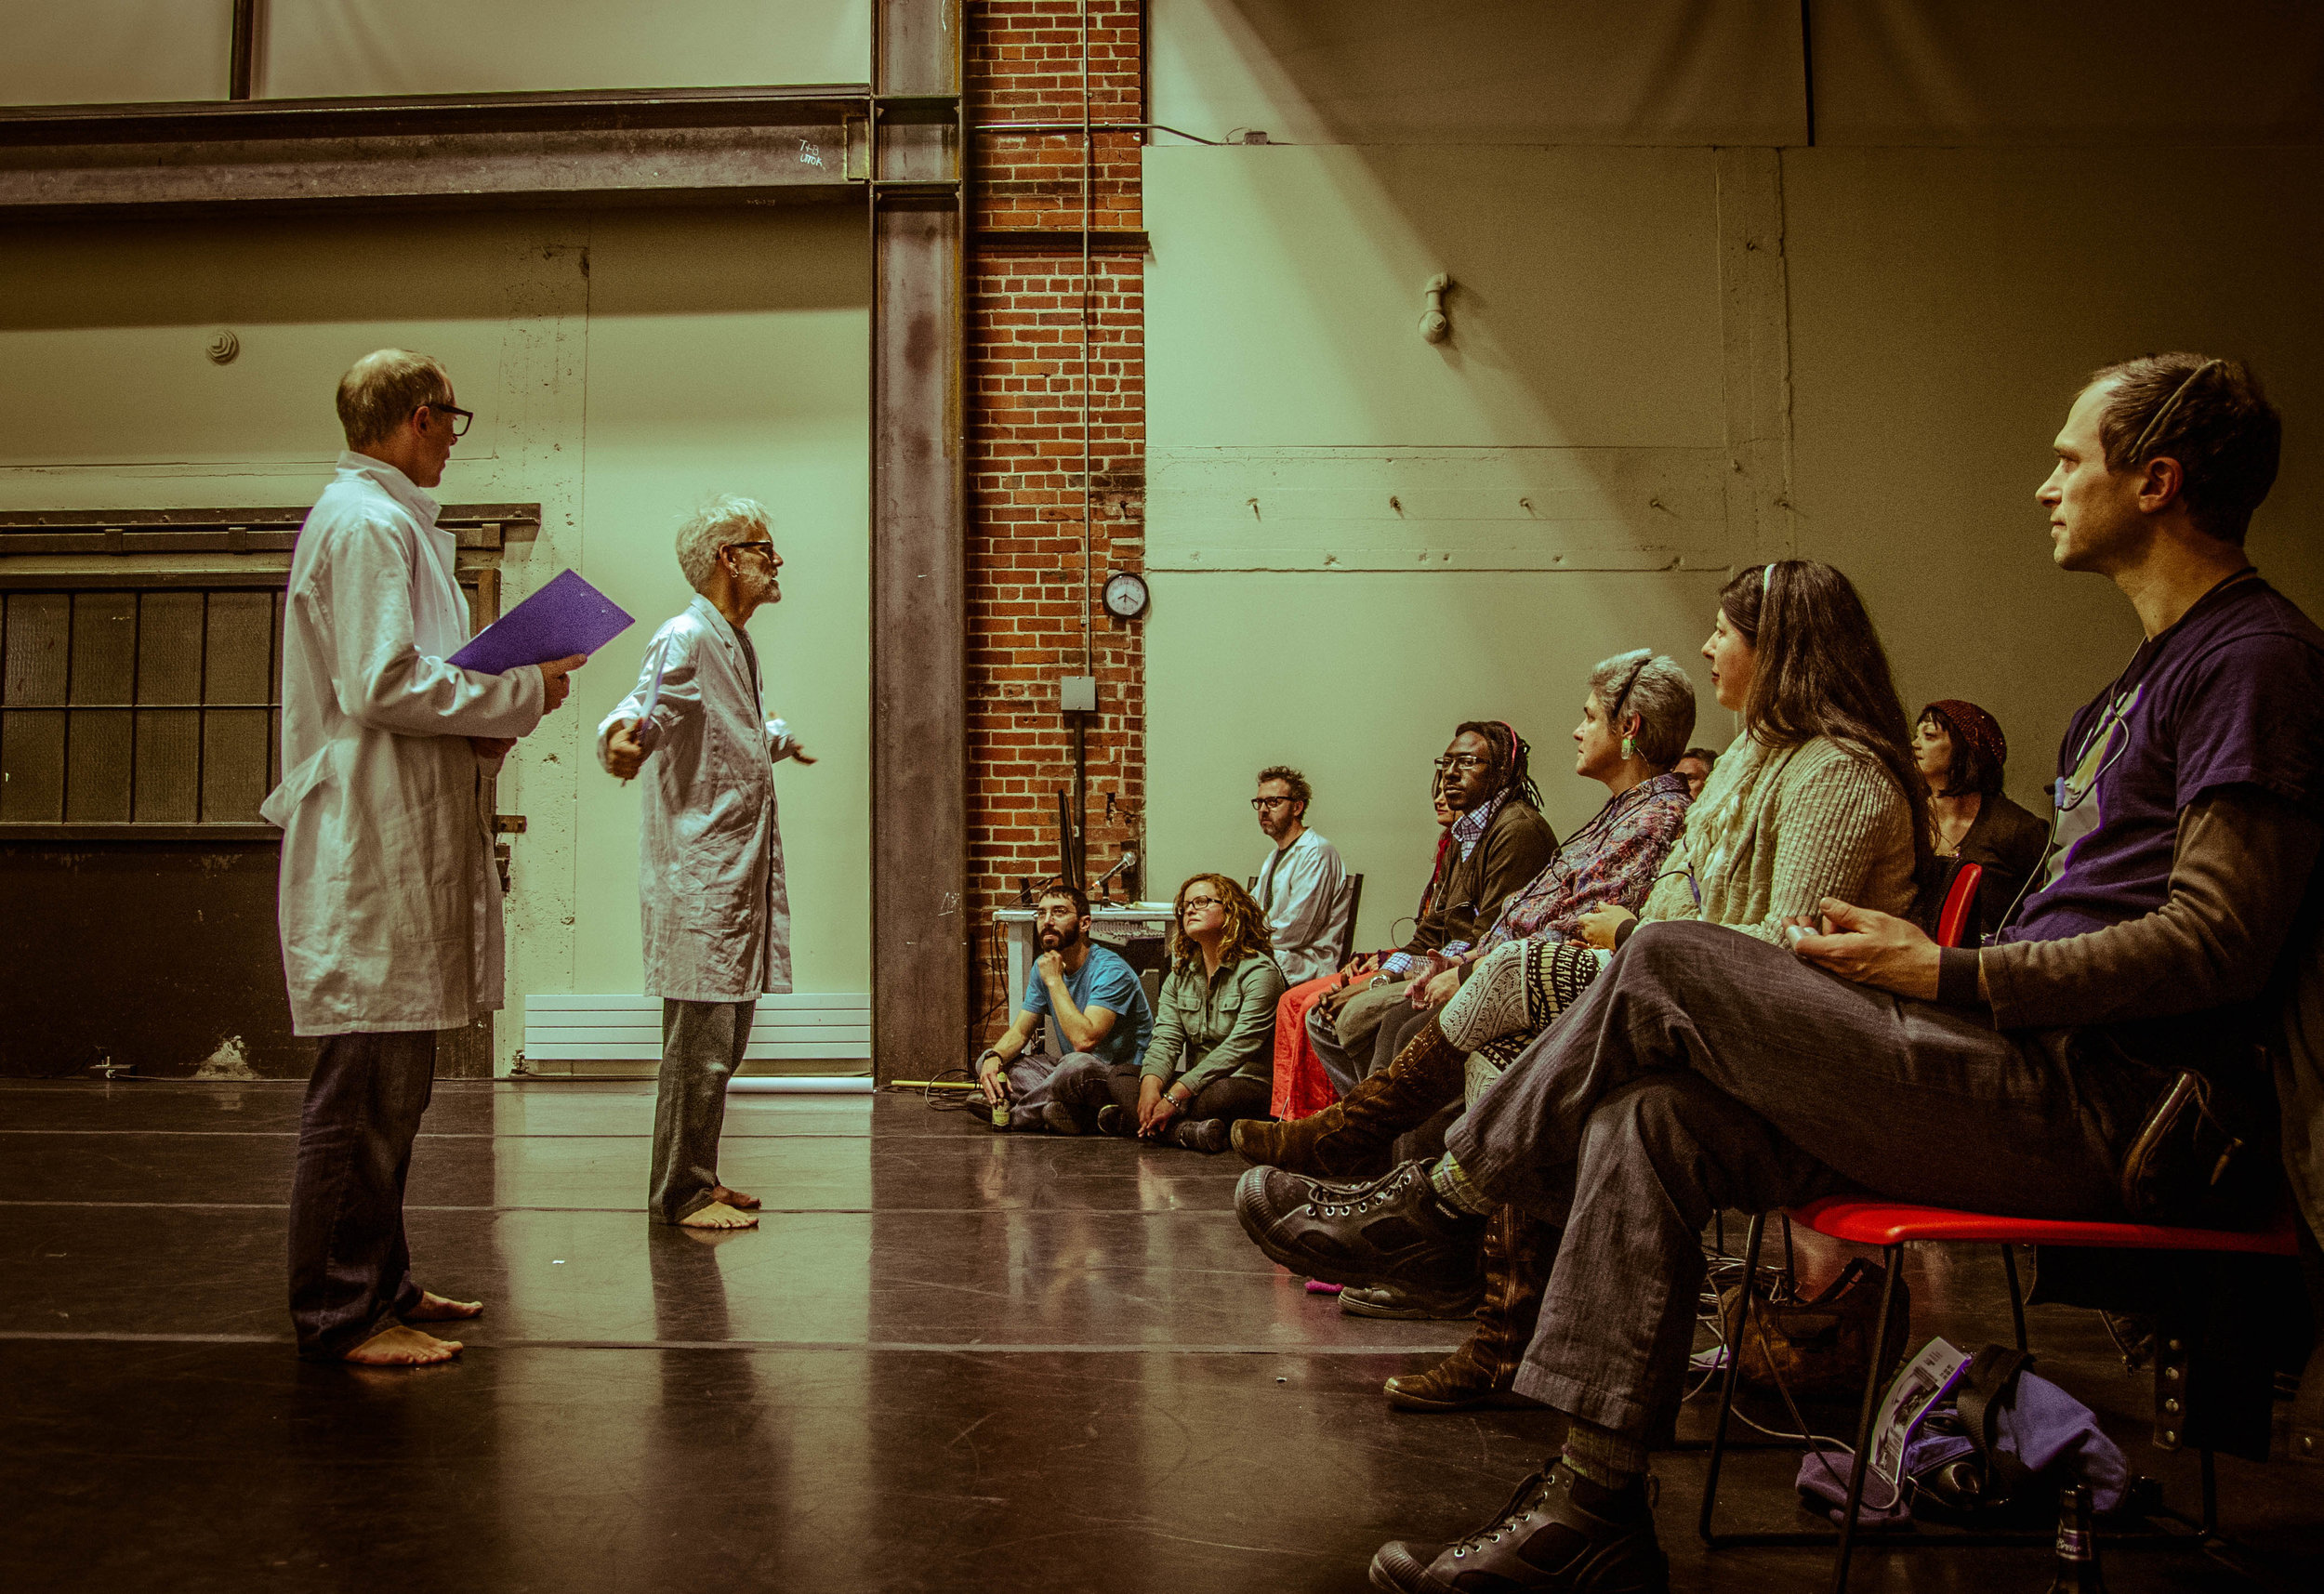 Müller and Curtis, in glasses and lab coats, address an informal audience that is seated in chairs and on the performance space floor. (photo: Robbie Sweeny)